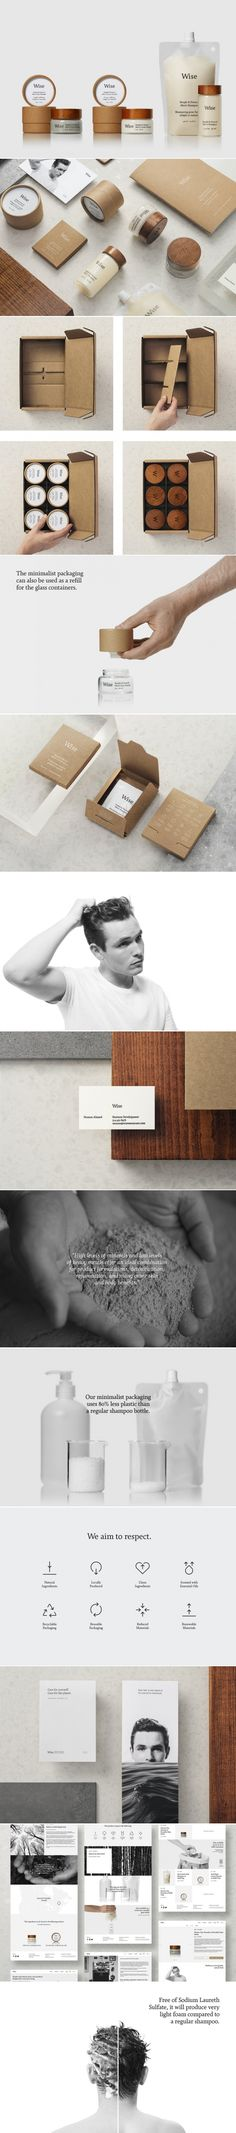 Wise Men's Care Believes in Doing a Lot with Very Little — The Dieline   Packaging & Branding Design & Innovation News